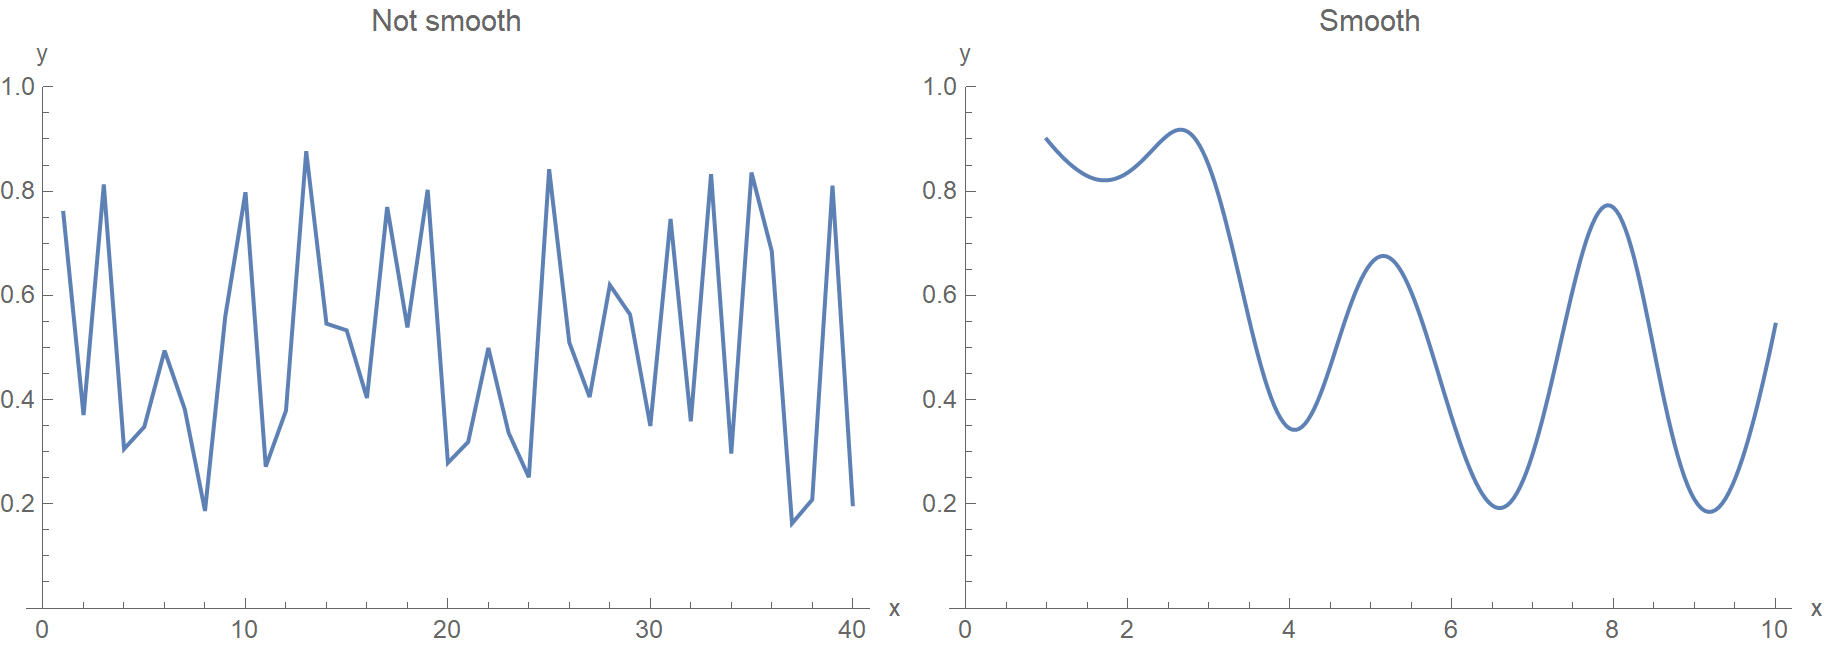 Smooth vs non-smooth functions